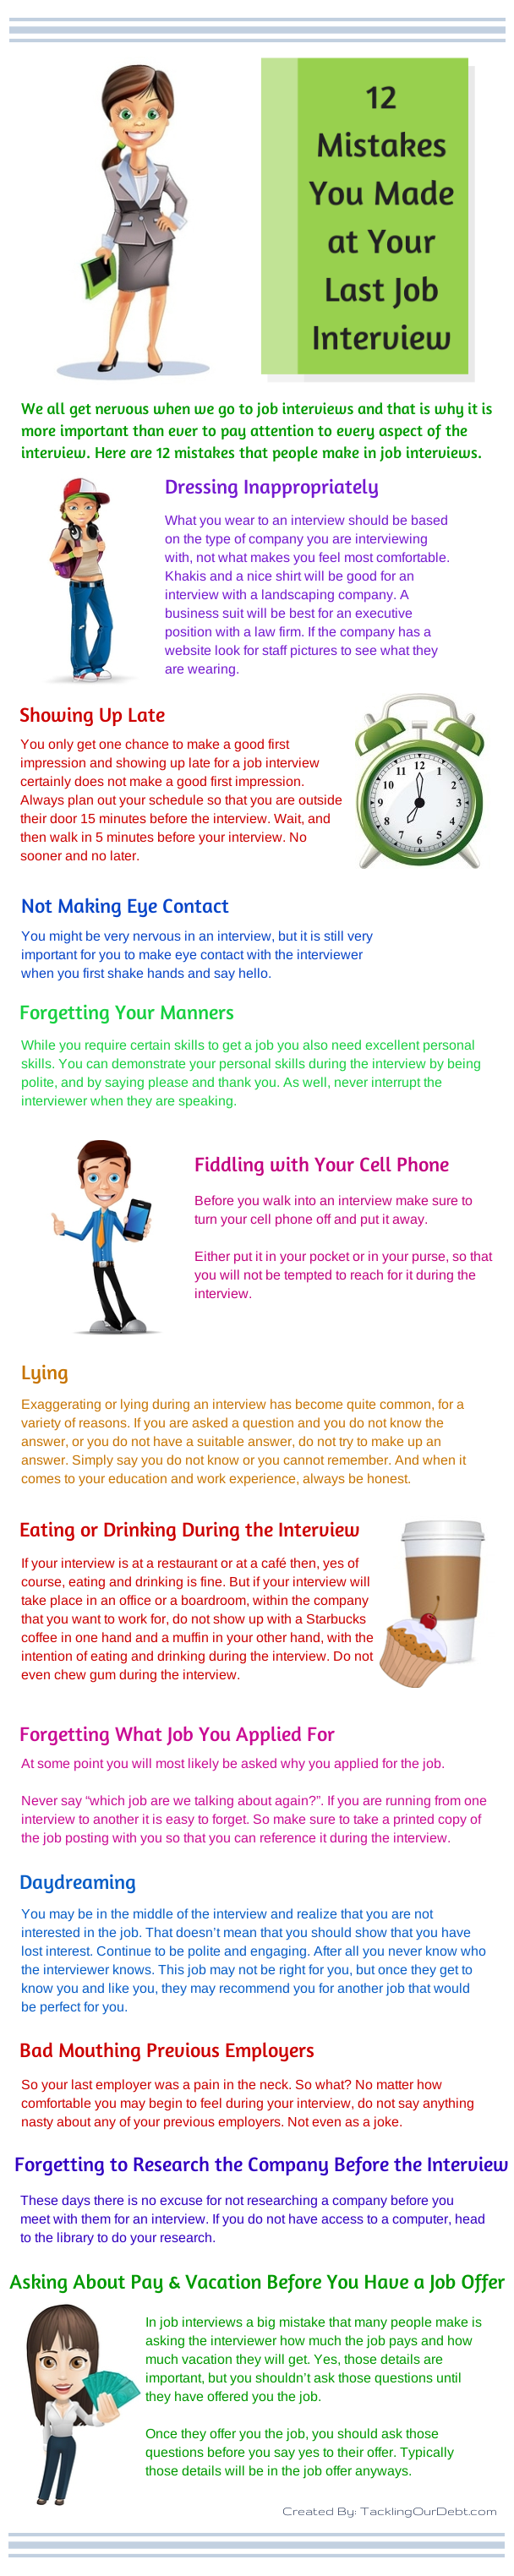 12 Mistakes You Made at Your Last Job Interview infographic